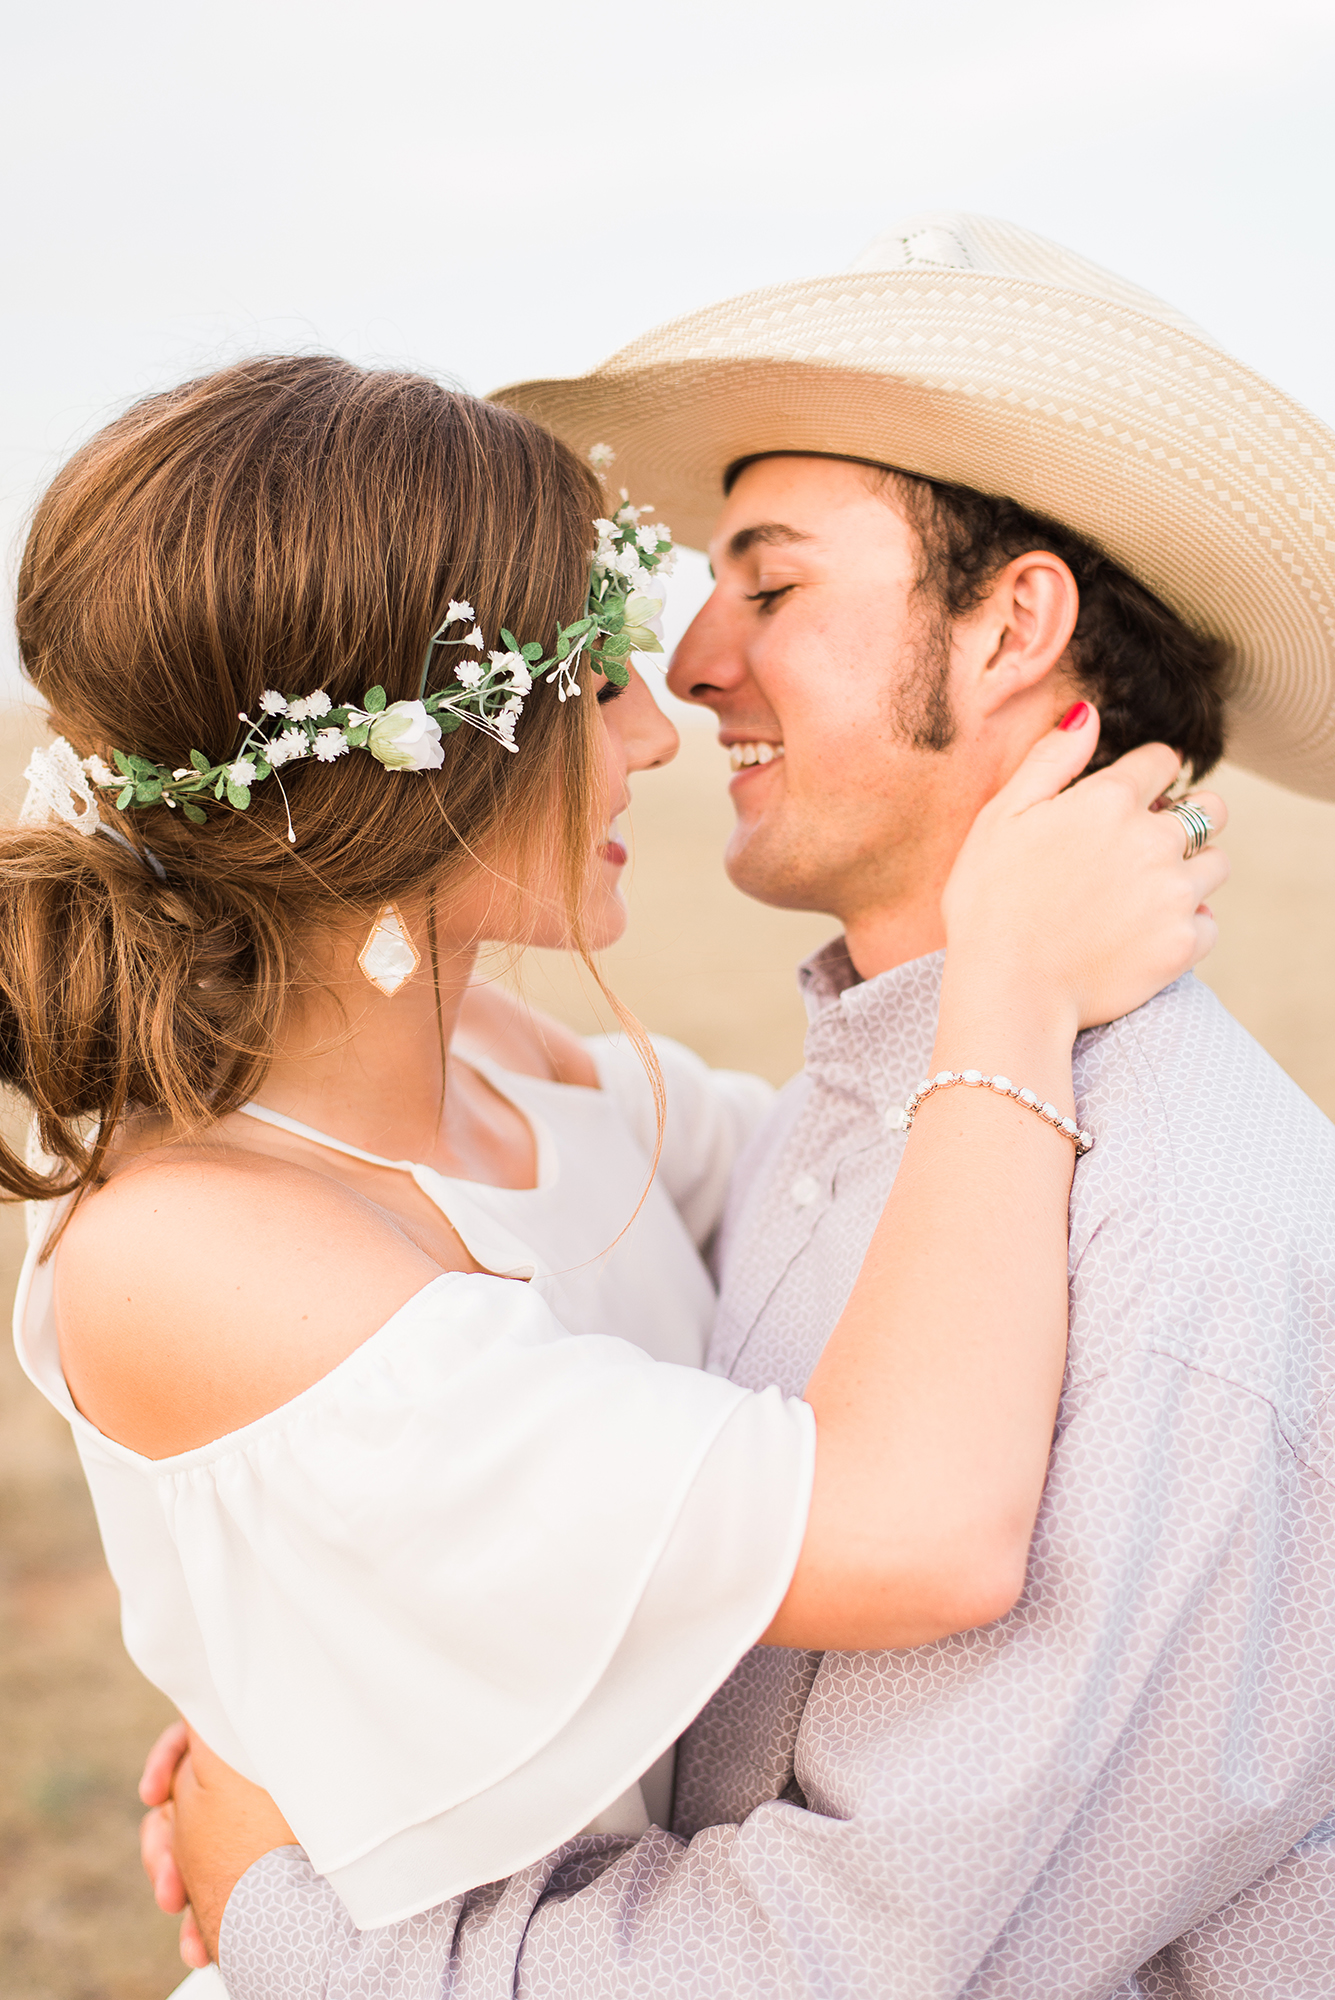 new-mexico-engagement-photographer-skylar-rain-photography-k-l-3.jpg